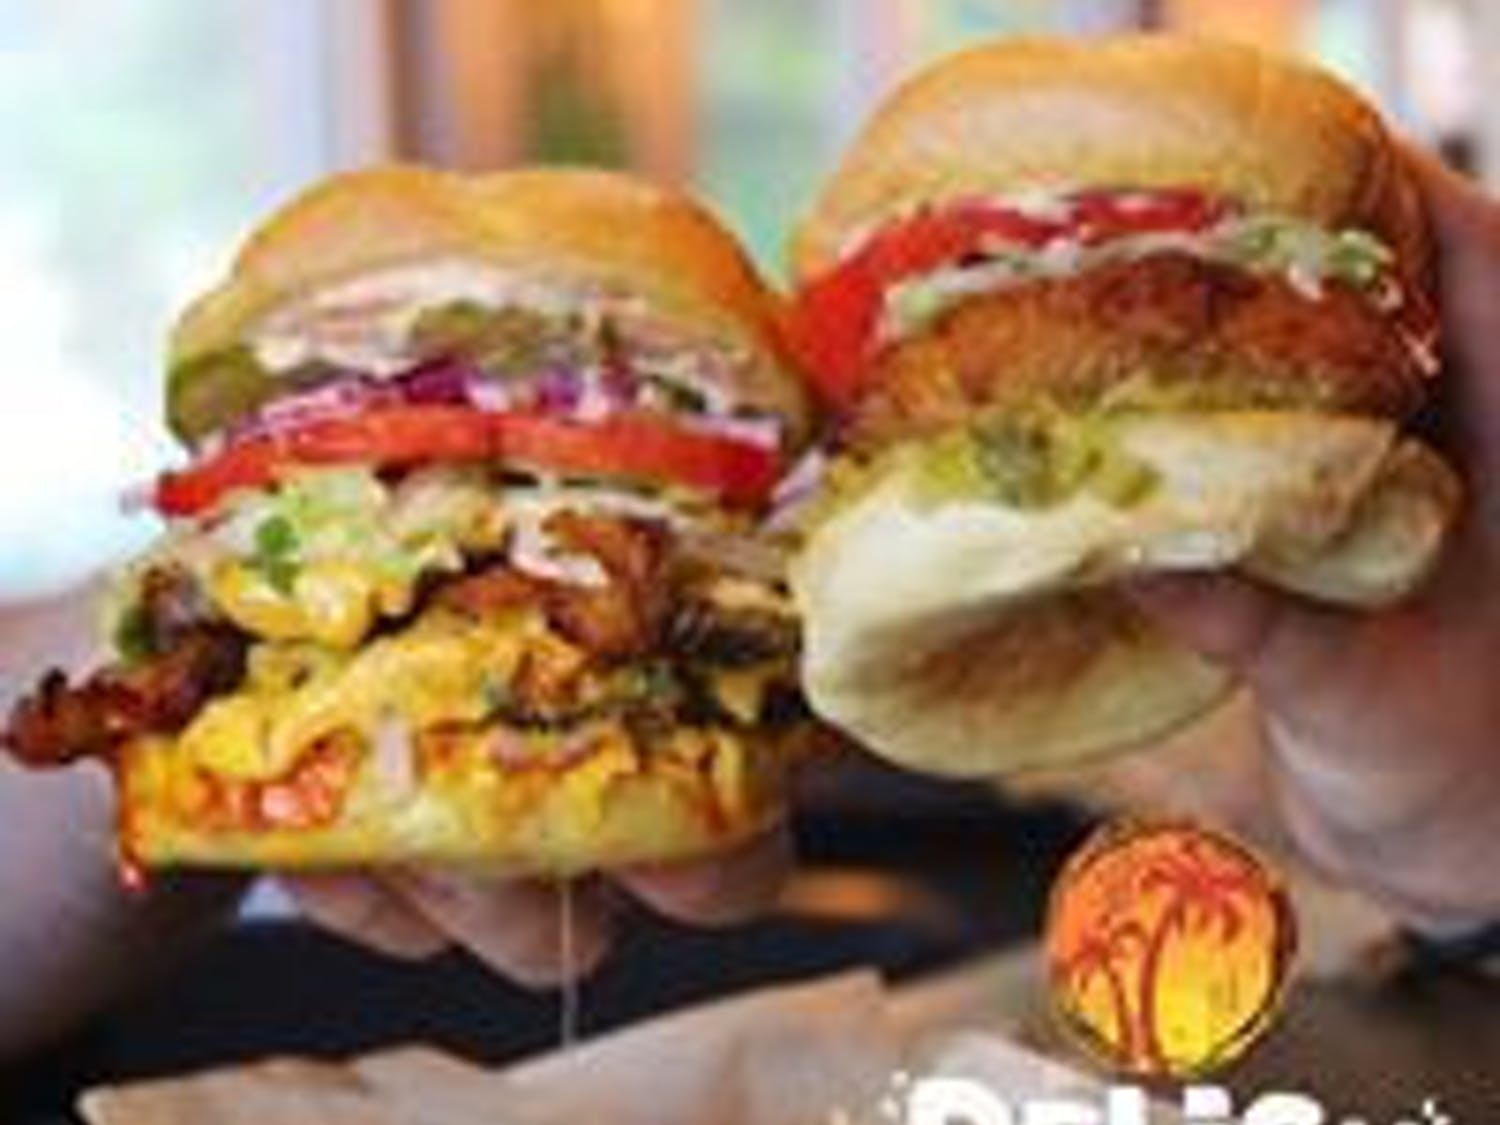 With multiple locations throughout the Gainesville area, Relish has been serving its burgers to students and locals for years.